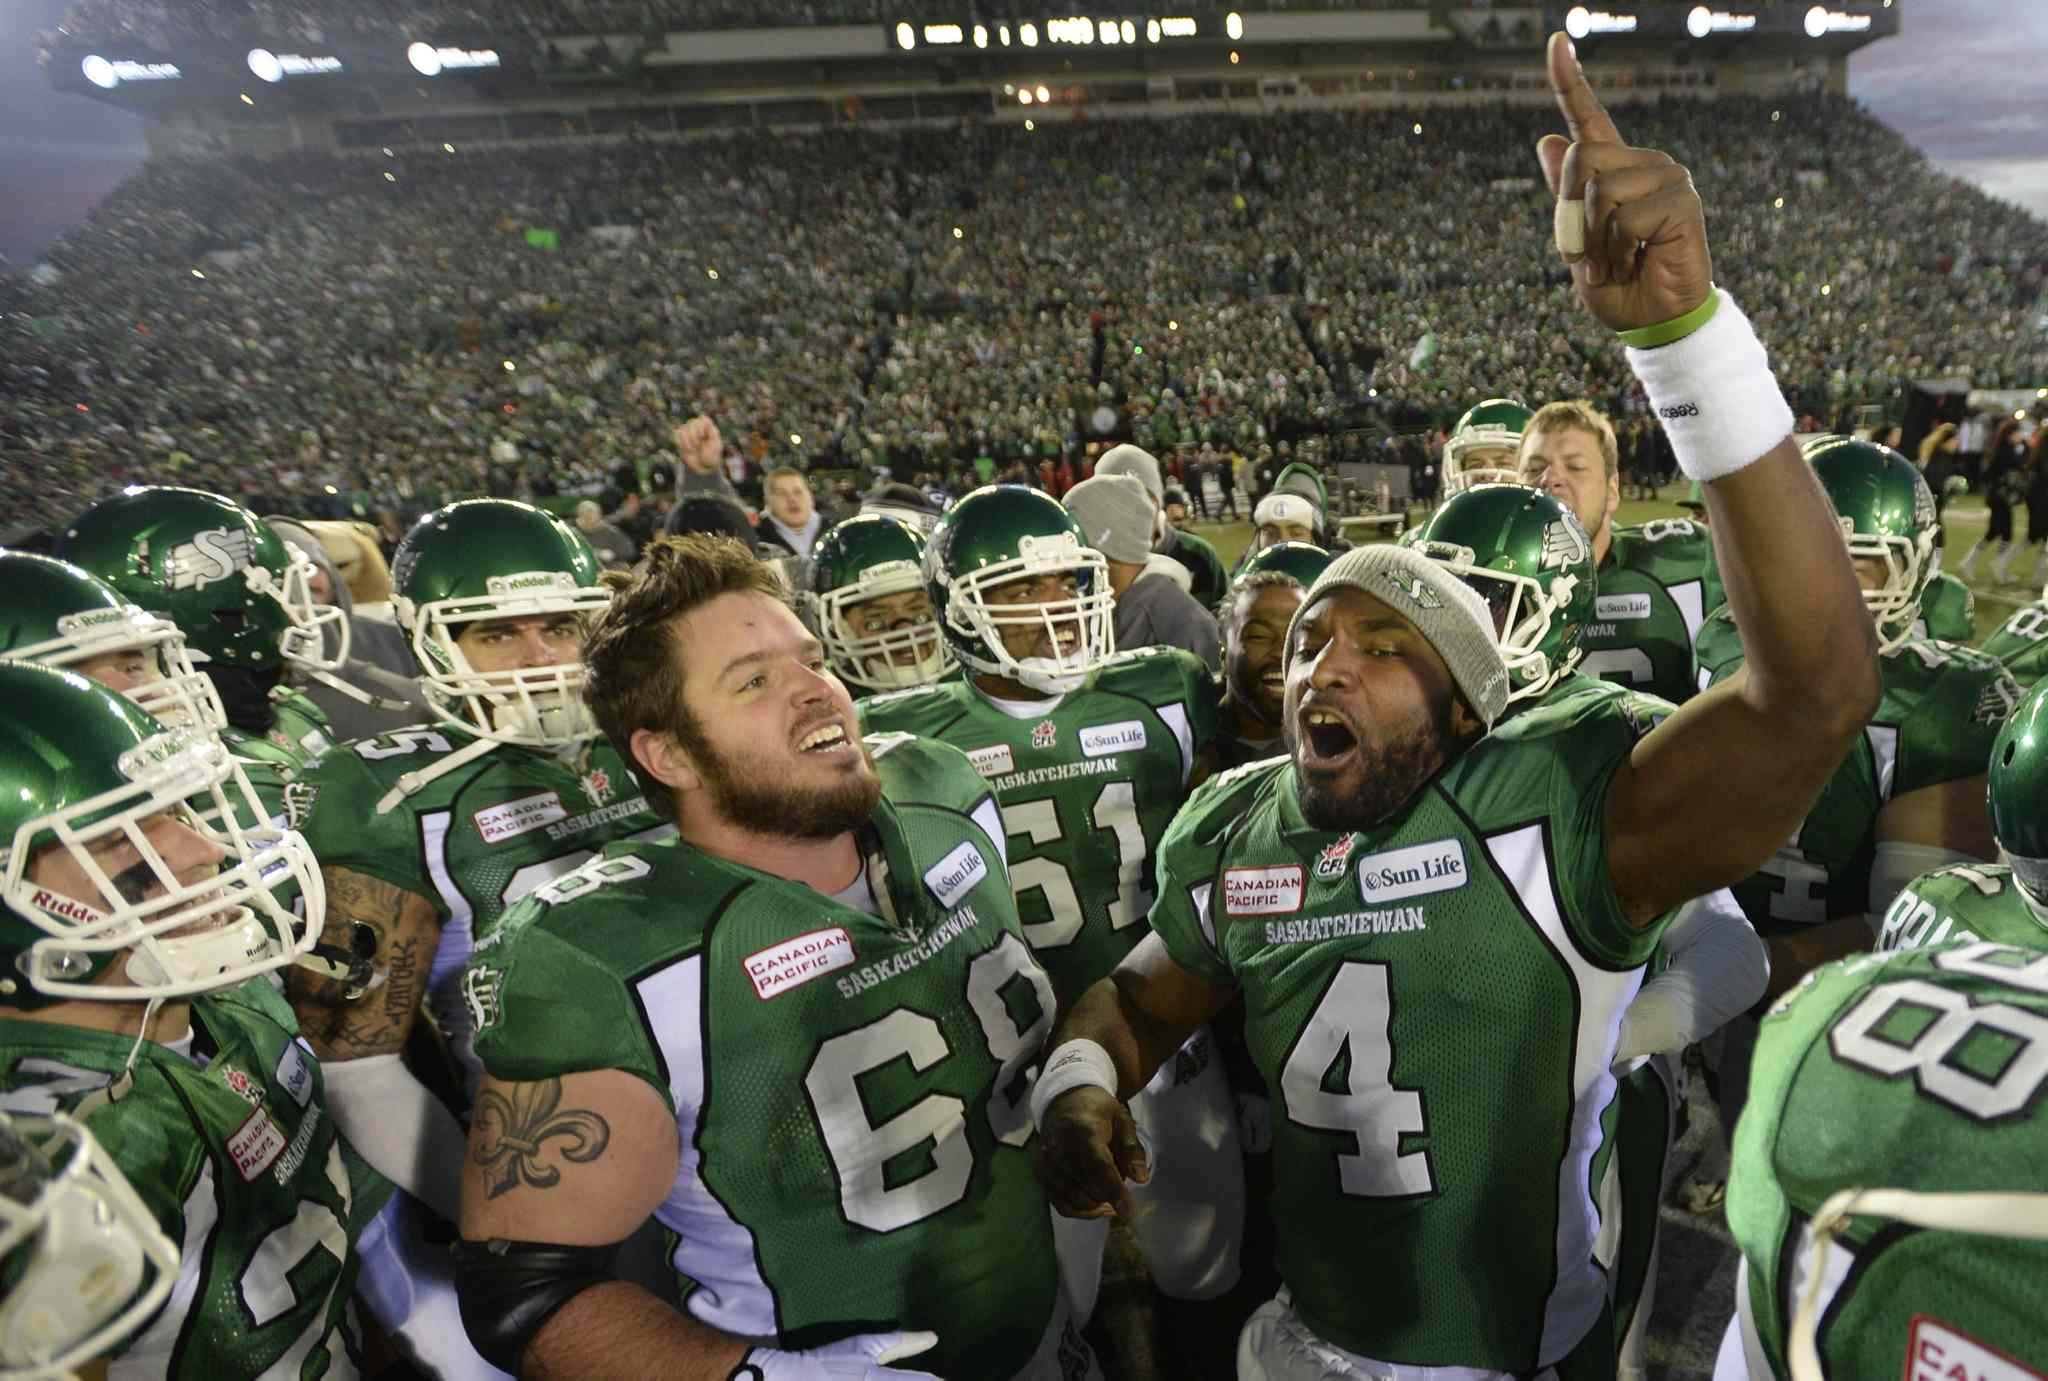 Saskatchewan Roughriders quarterback Darian Durant (4) leads his team on the field.